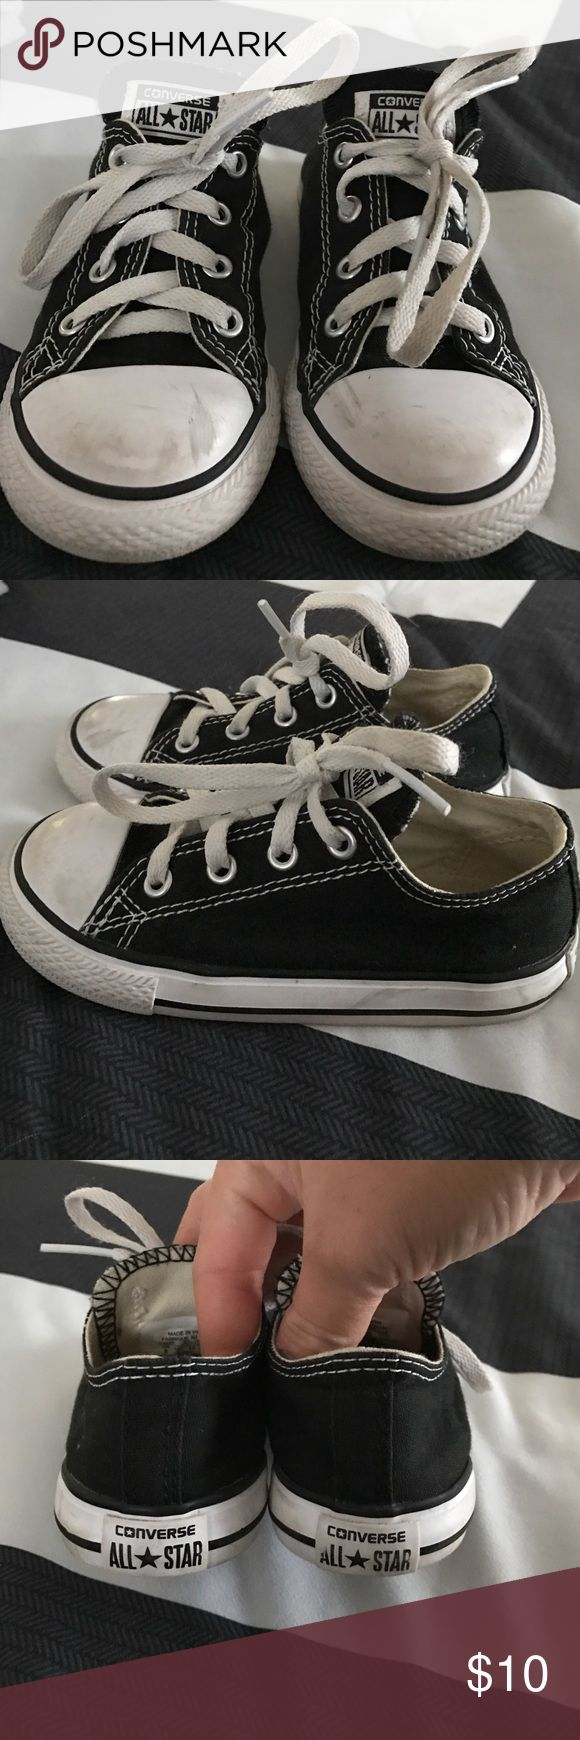 Toddler Boy's size 8 low top Converse In great condition - toddler boy's size 8 low top canvas black converse (chuck Taylor's) use a warm rag and soap to clean the sole And white toe of shoe. Converse Shoes Sneakers